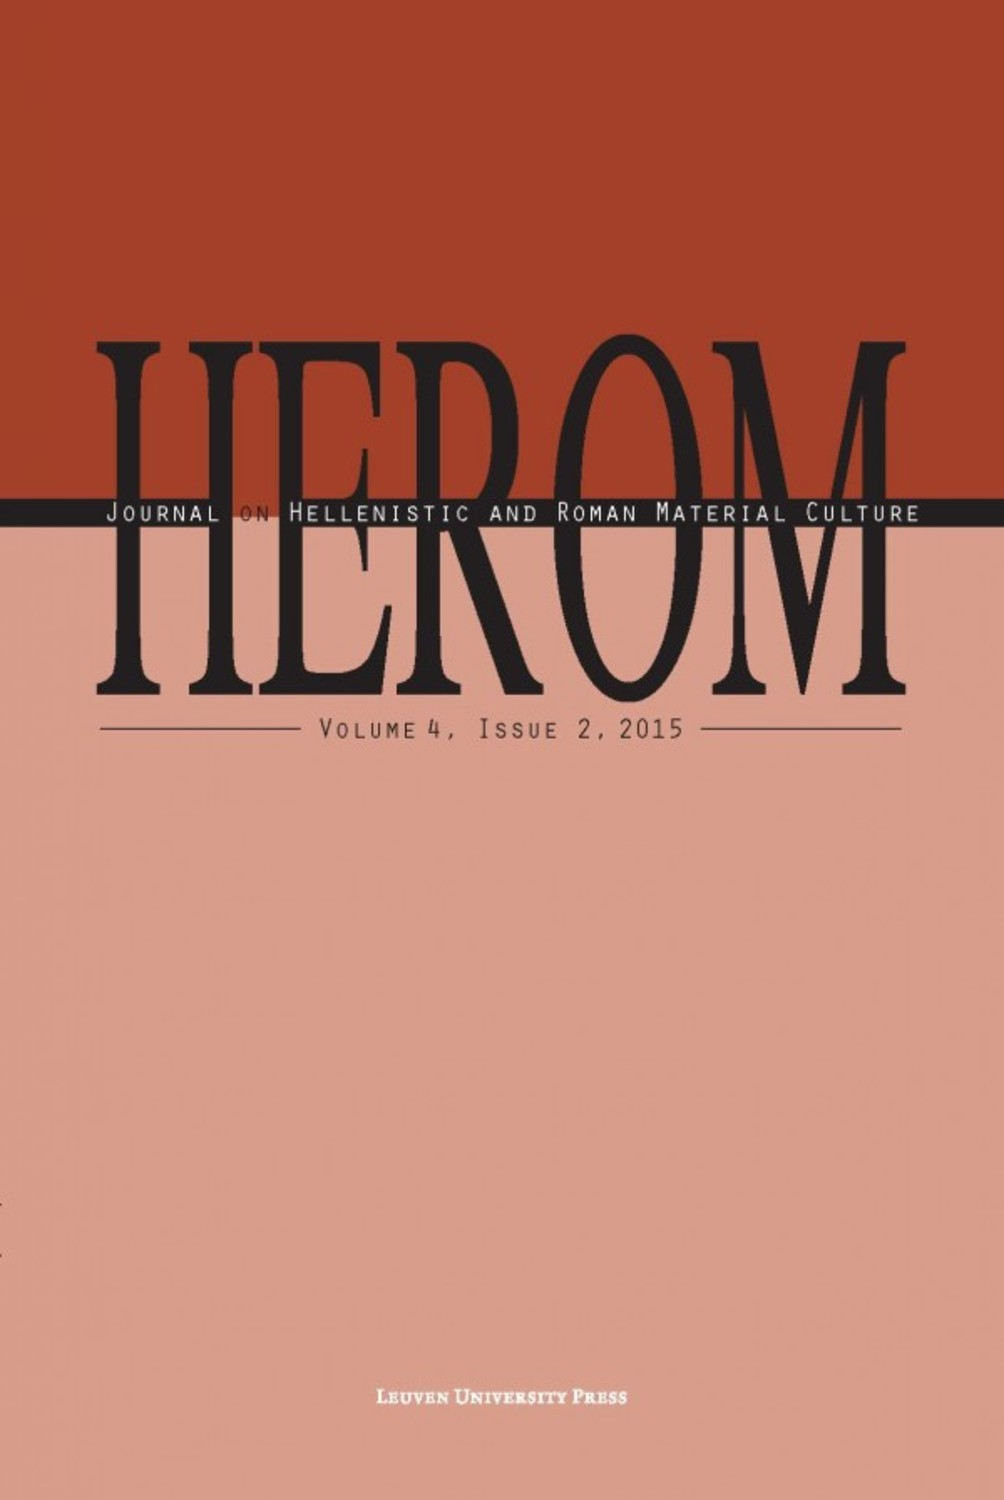 HEROM Volume 4 Issue 2, 2015 (Journal Subscription)